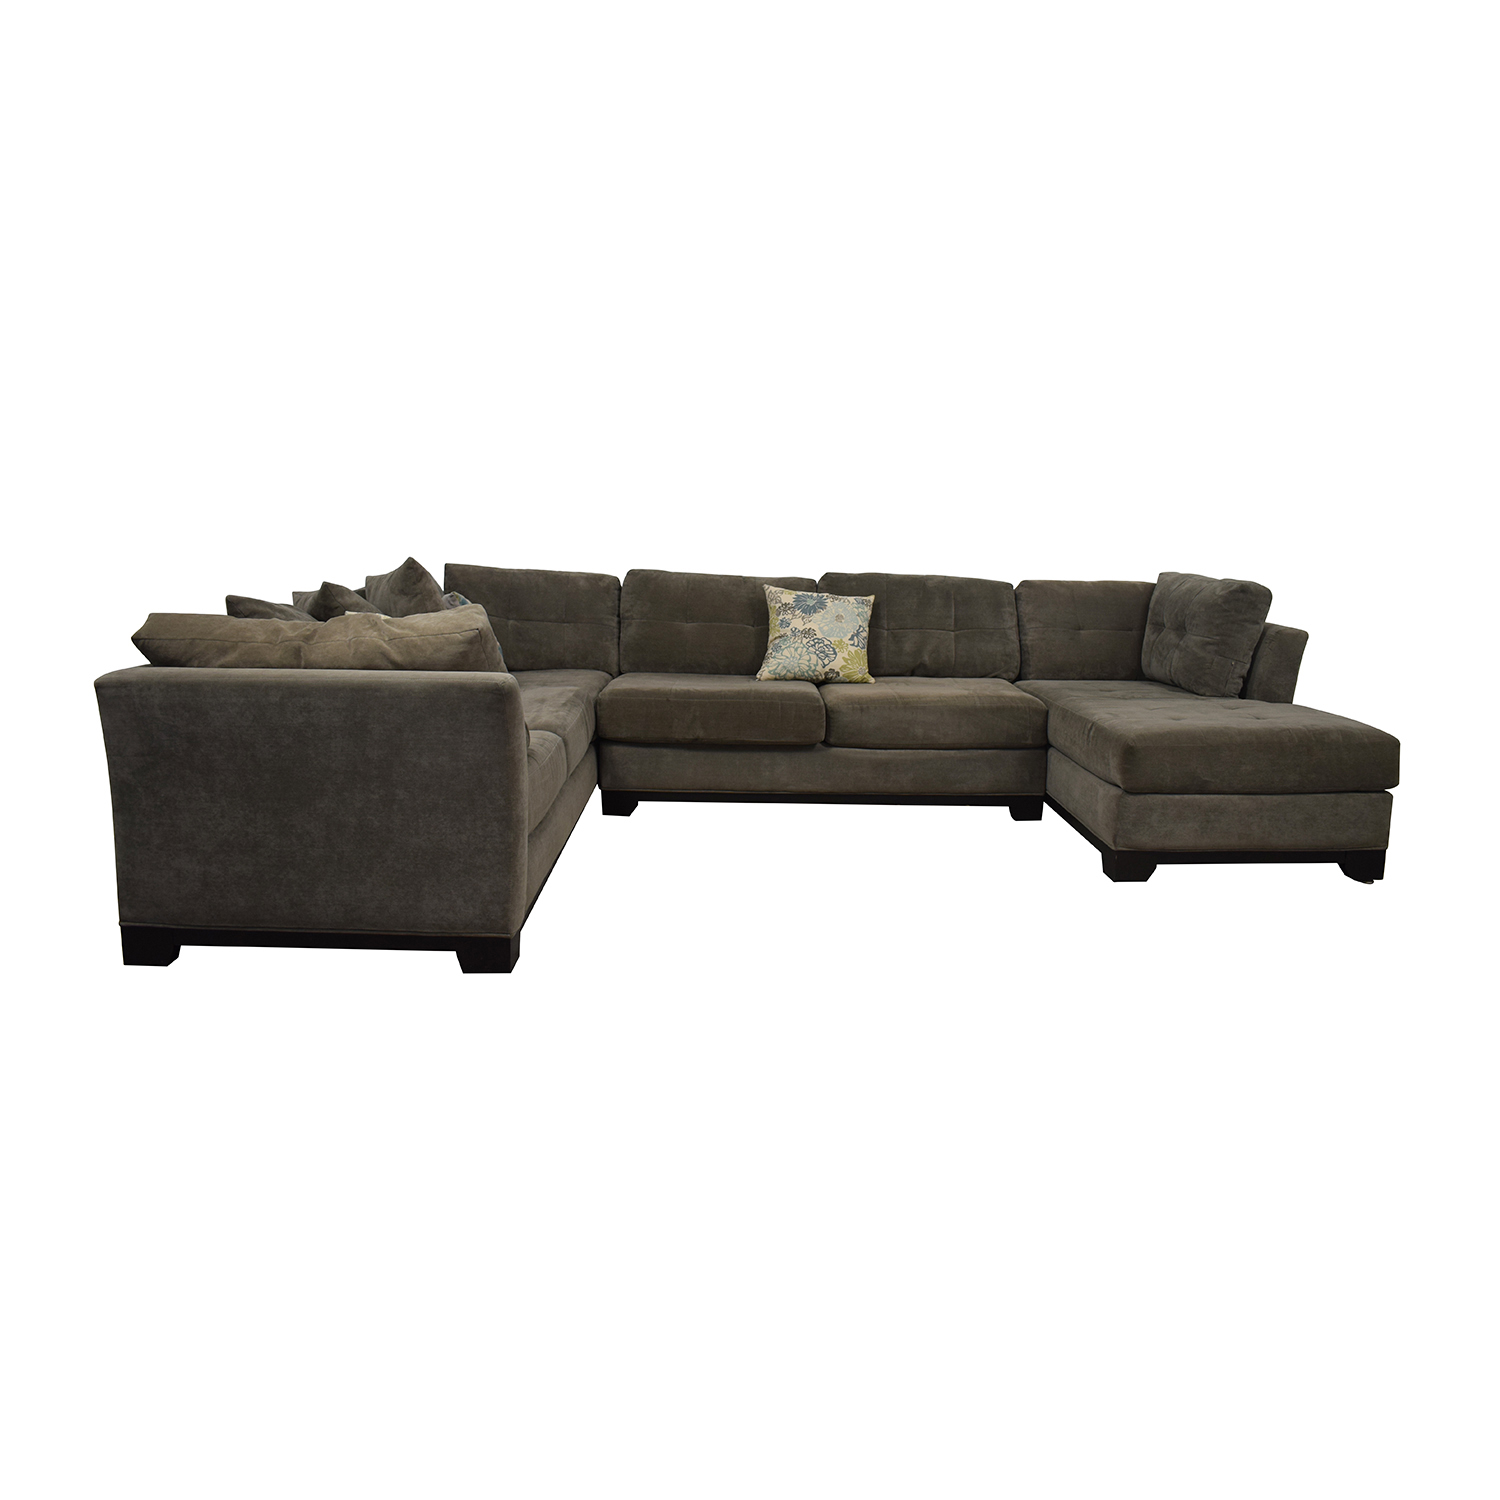 Jonathan Louis Jonathan Louis Grey U-Shaped Chaise Sectional second hand